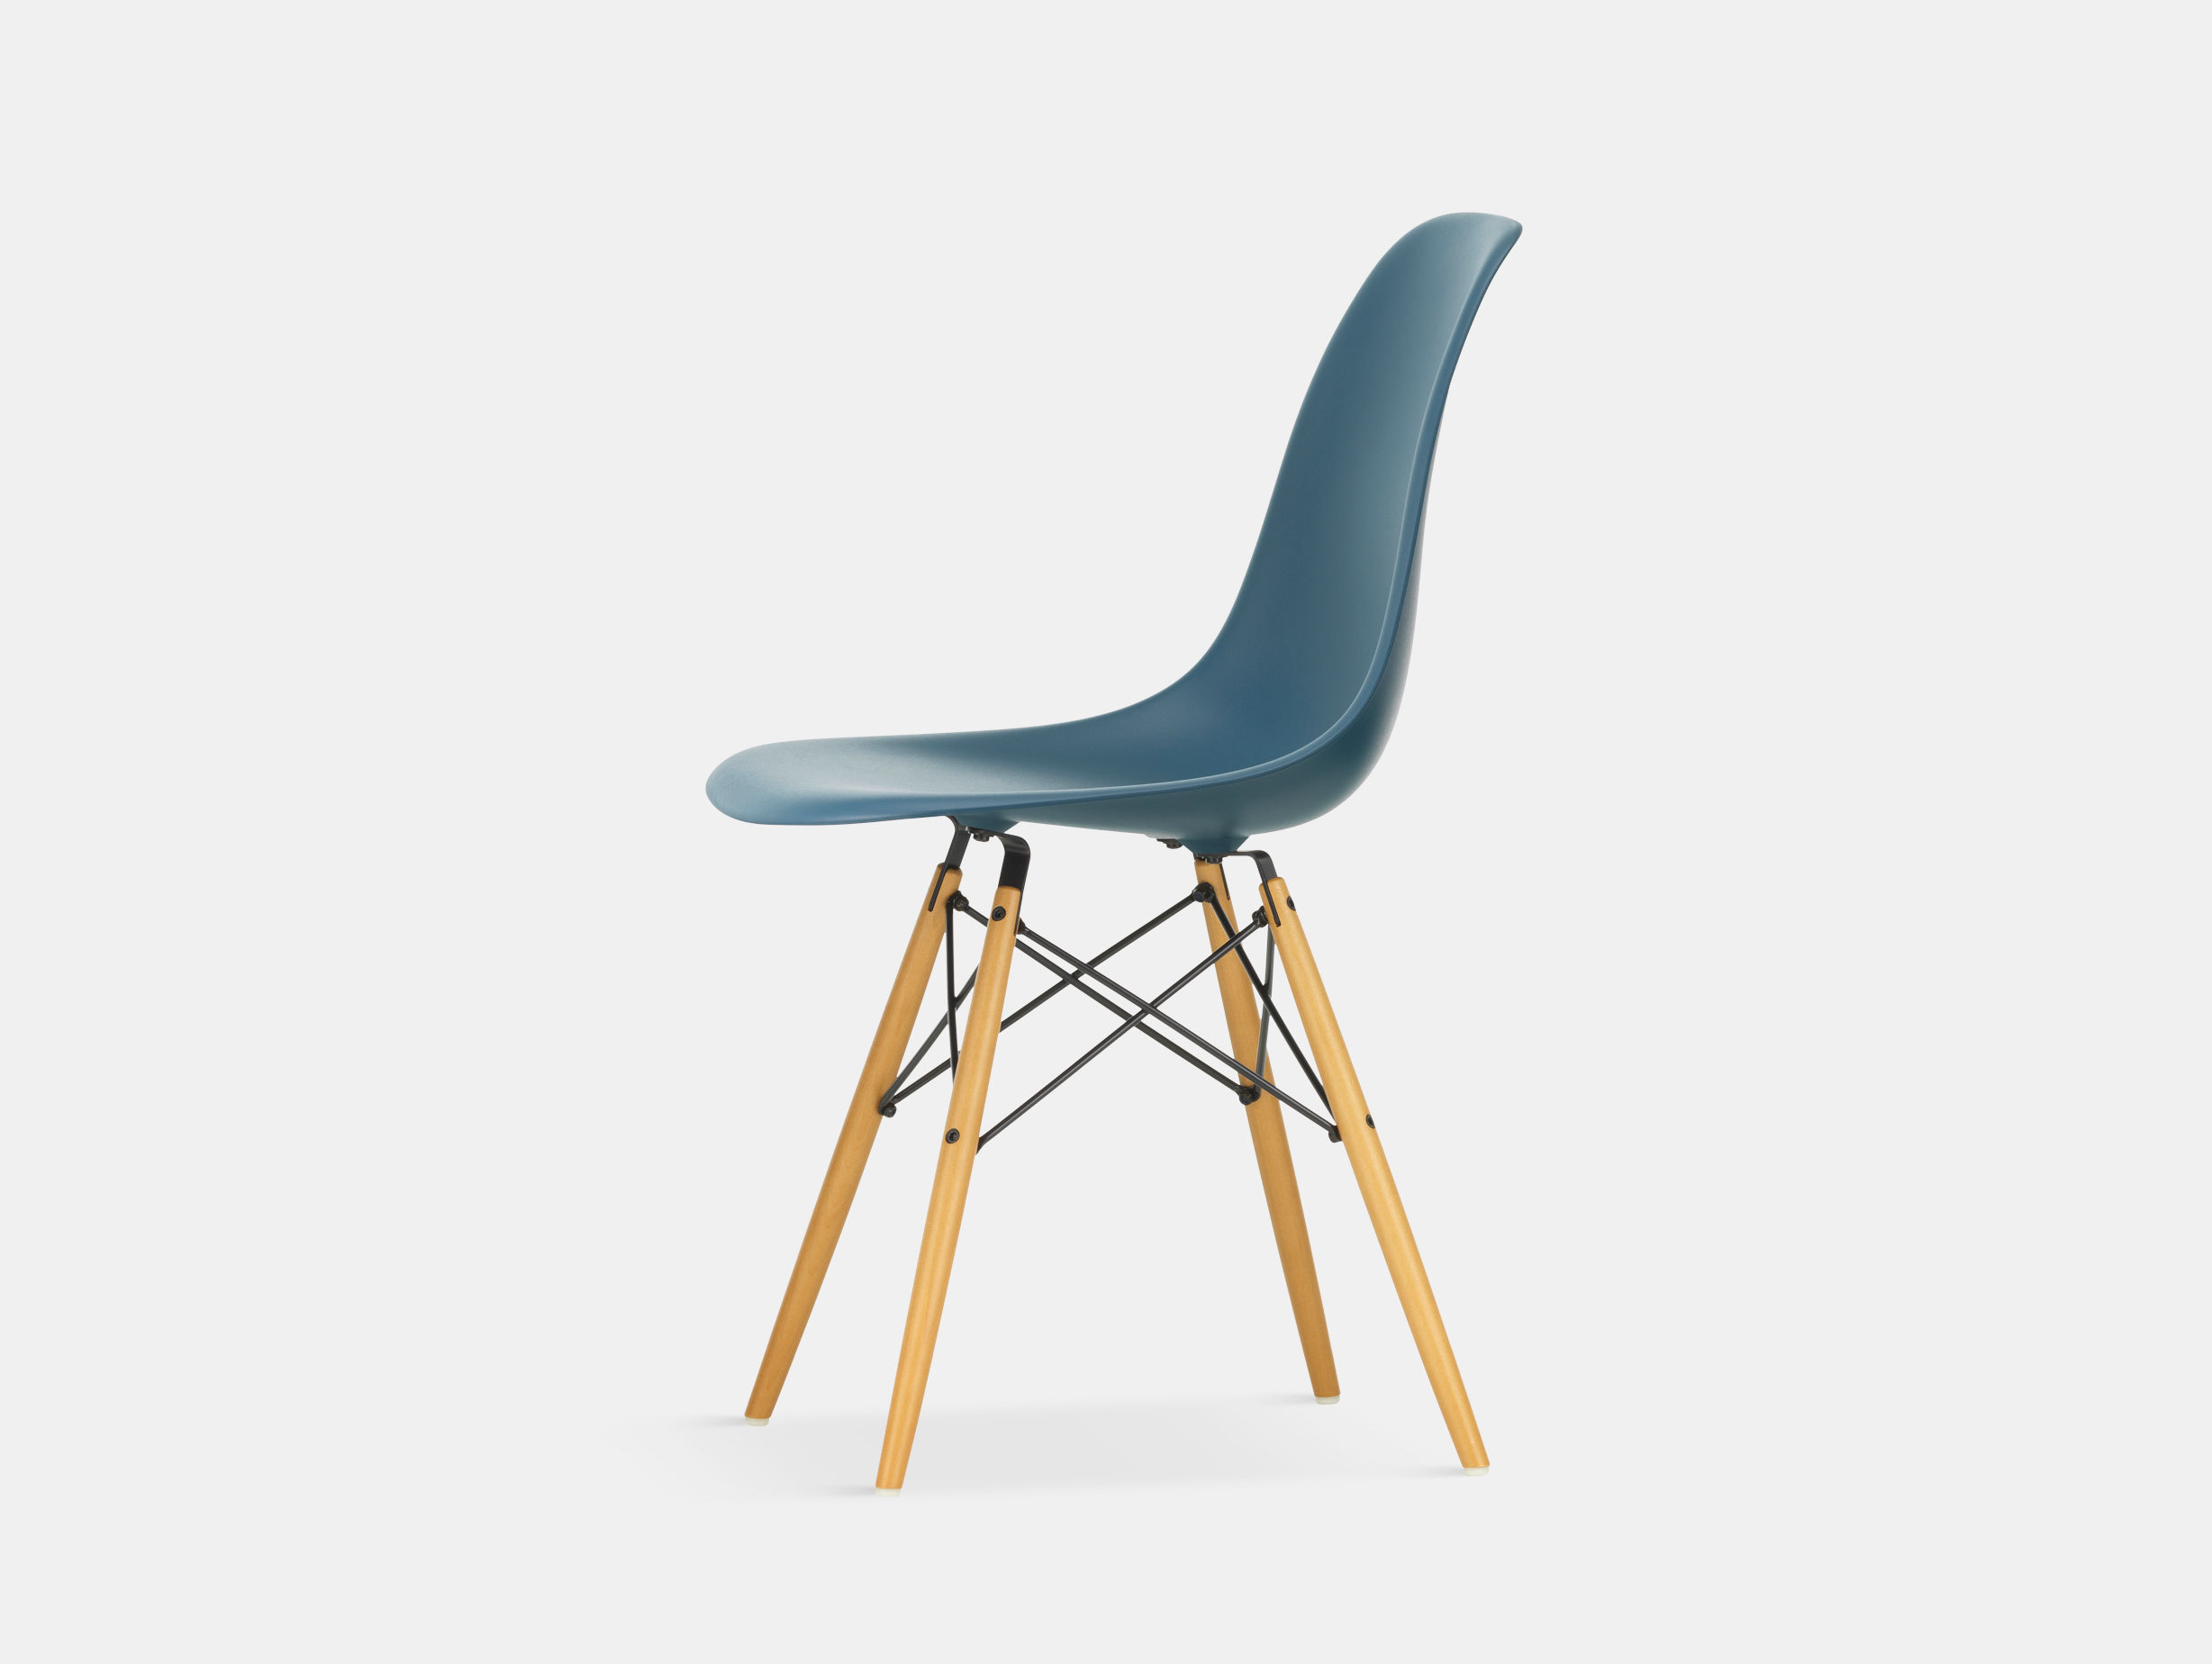 Vitra Eames DSW Plastic Side Chair sea blue golden maple legs